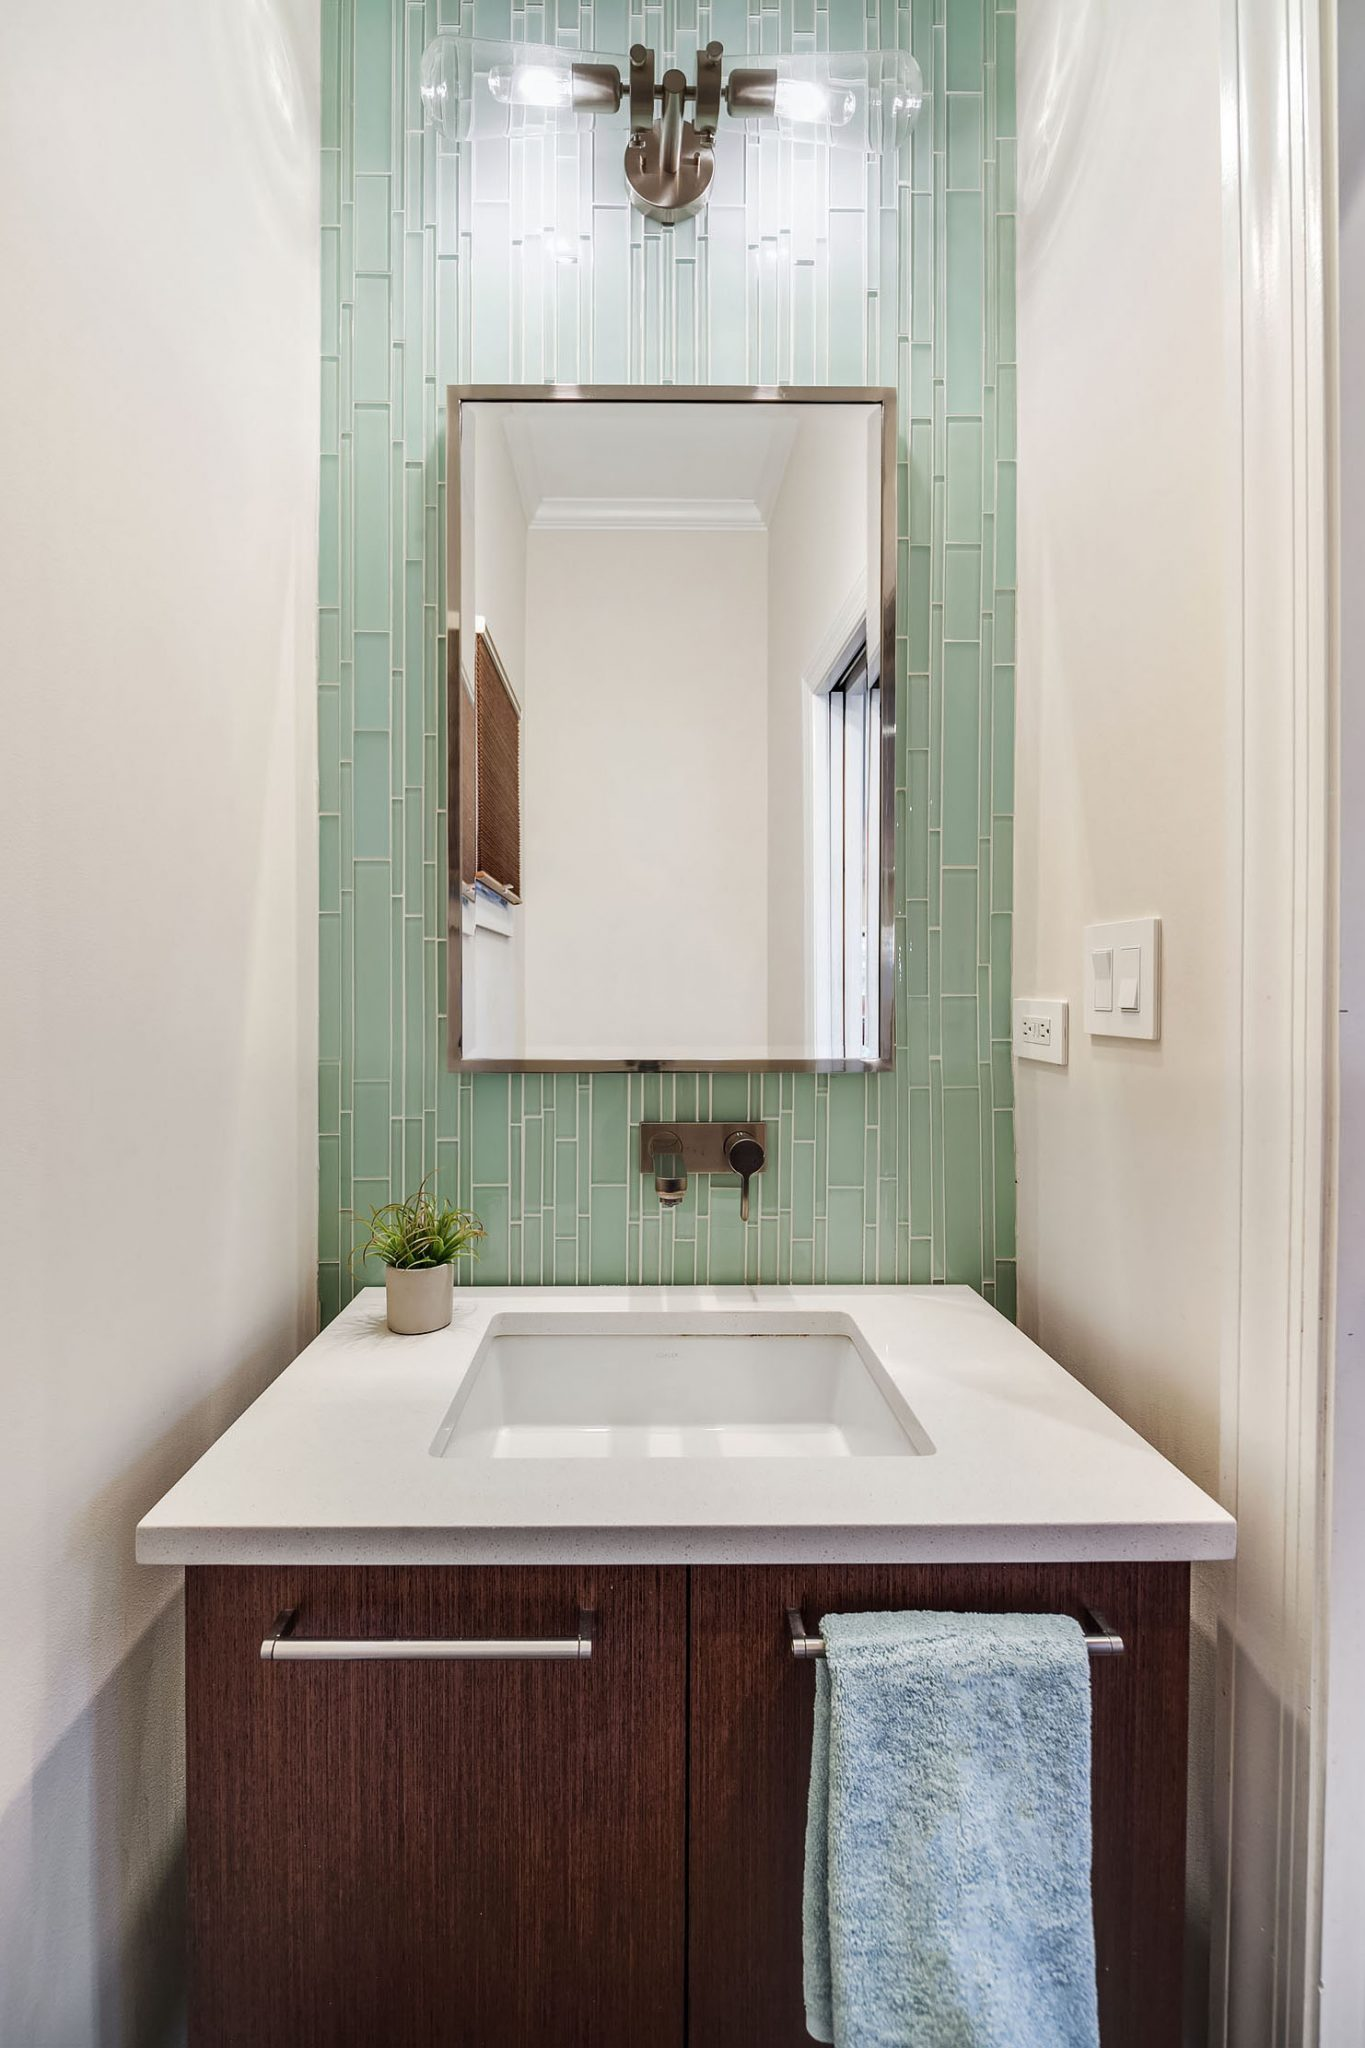 Whether Tranquil And Natural Or Modern And Bold, Habitar Design Can Craft  The Perfect Bathroom For You. Our Team Of Chicago Interior Designers Can  Expertly ...